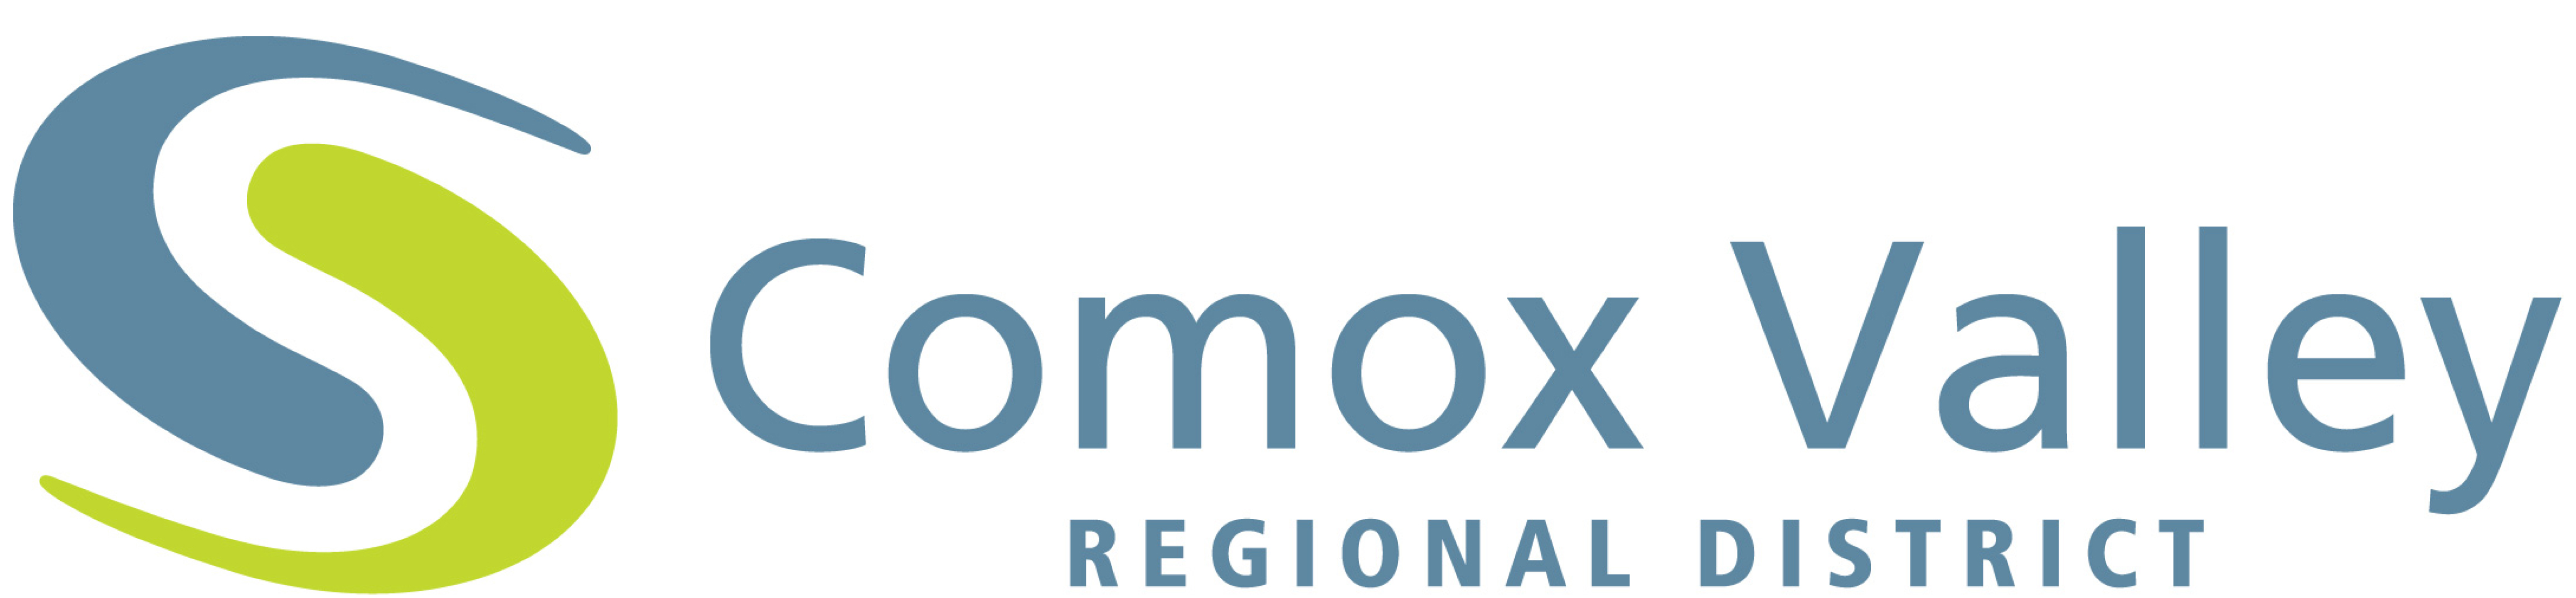 Comox Valley RD logo